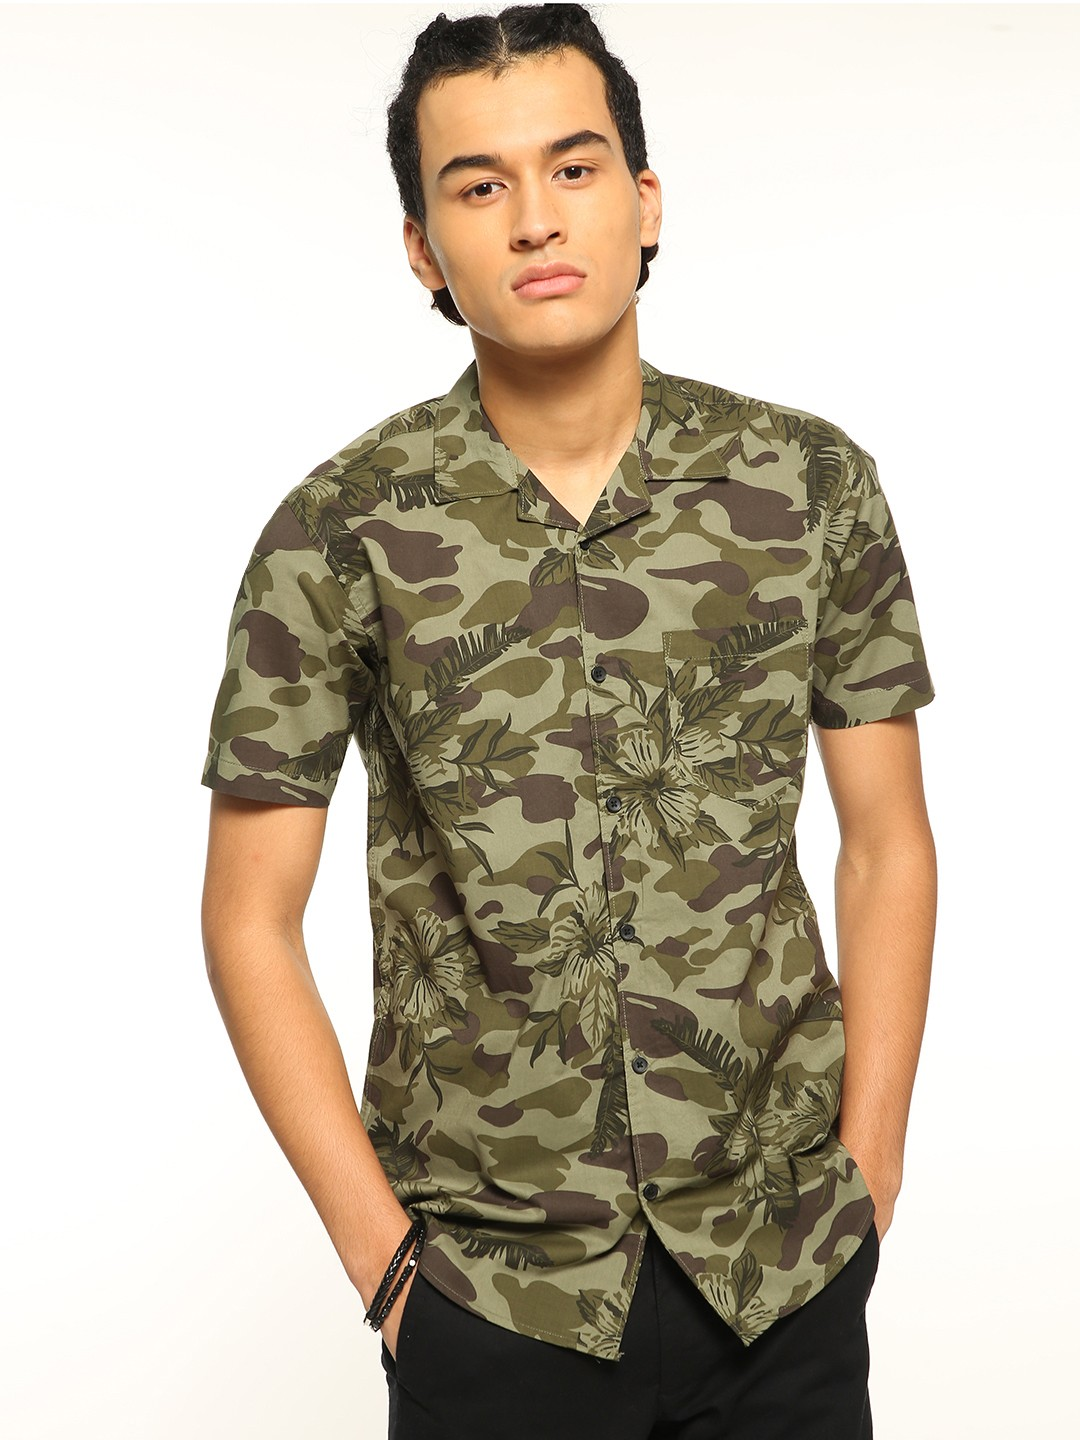 AMON Multi Camouflage Floral Print Cuban Shirt 1